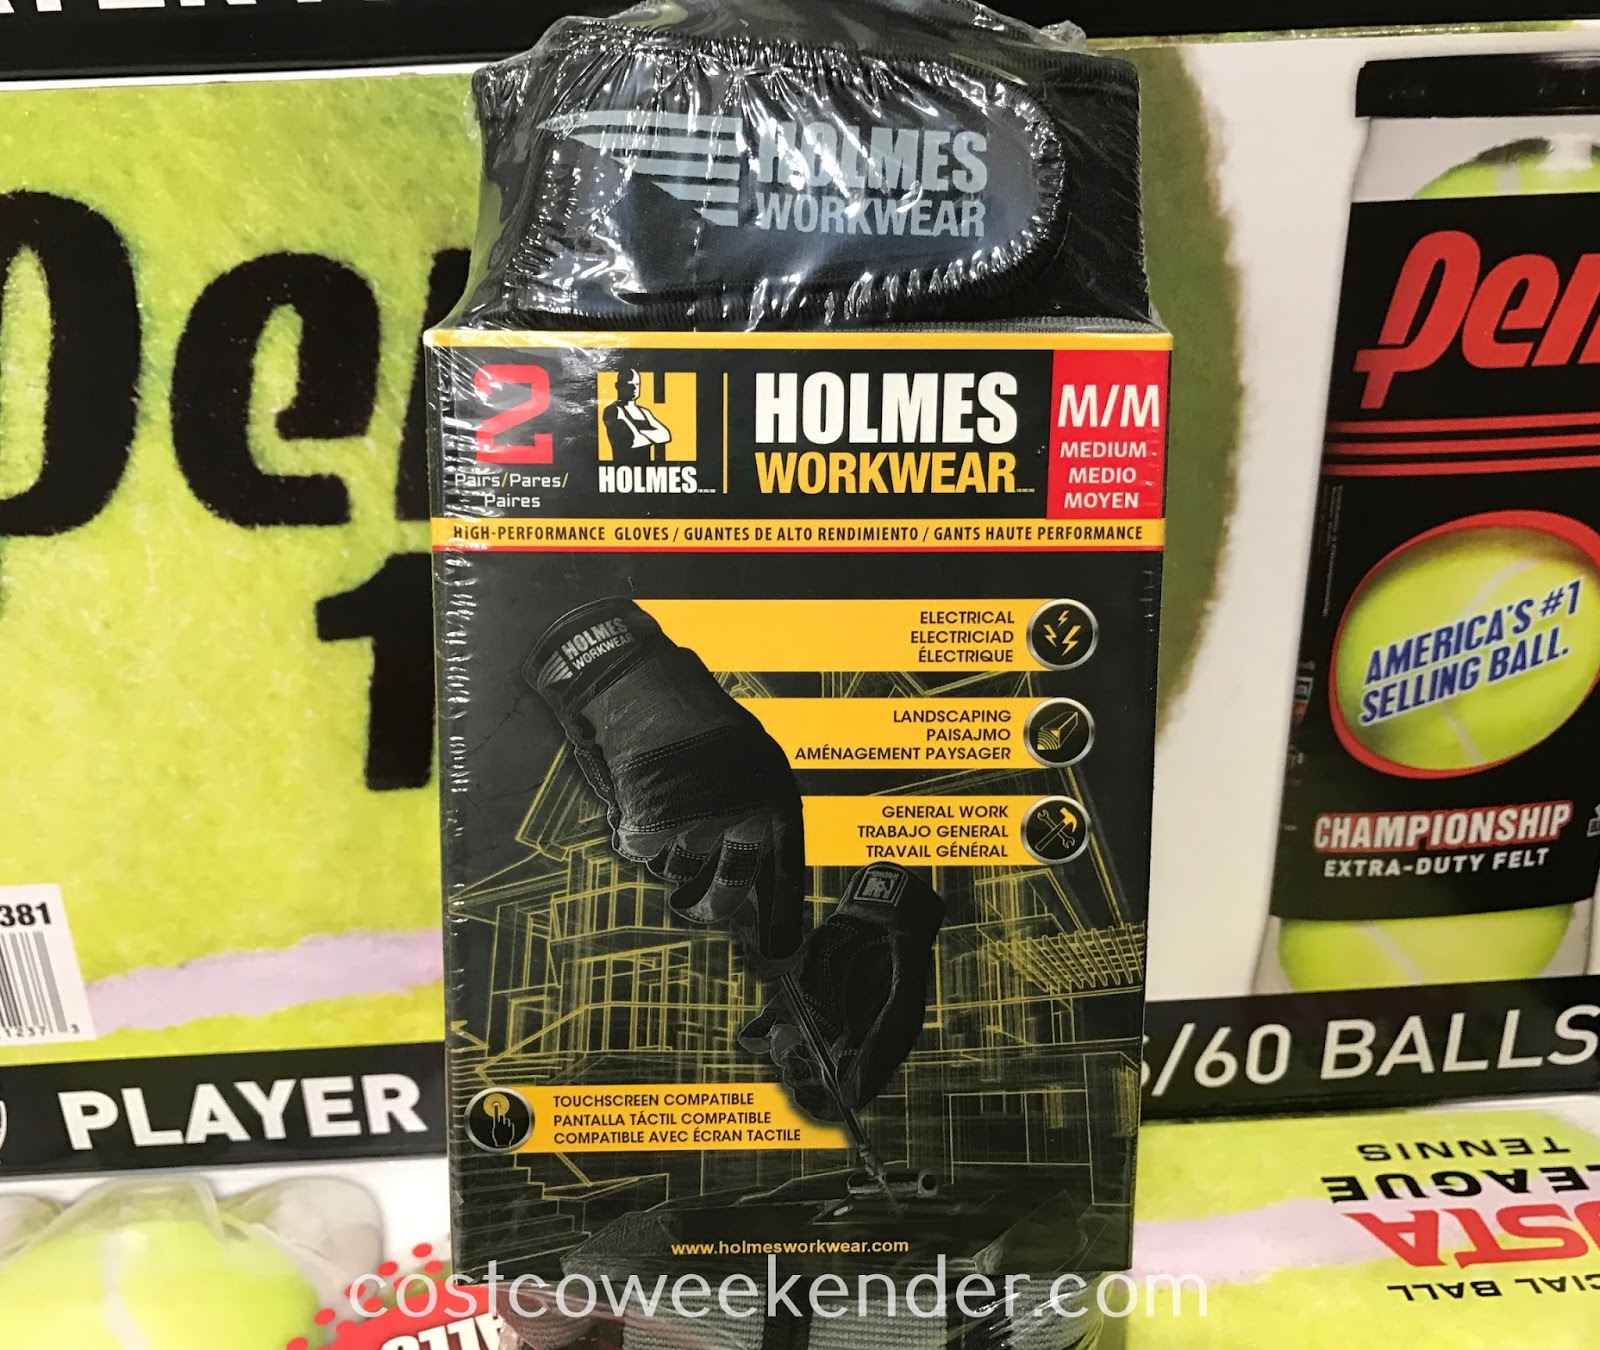 Protect your hands when doing some work with Holmes Workwear High-Performance Gloves